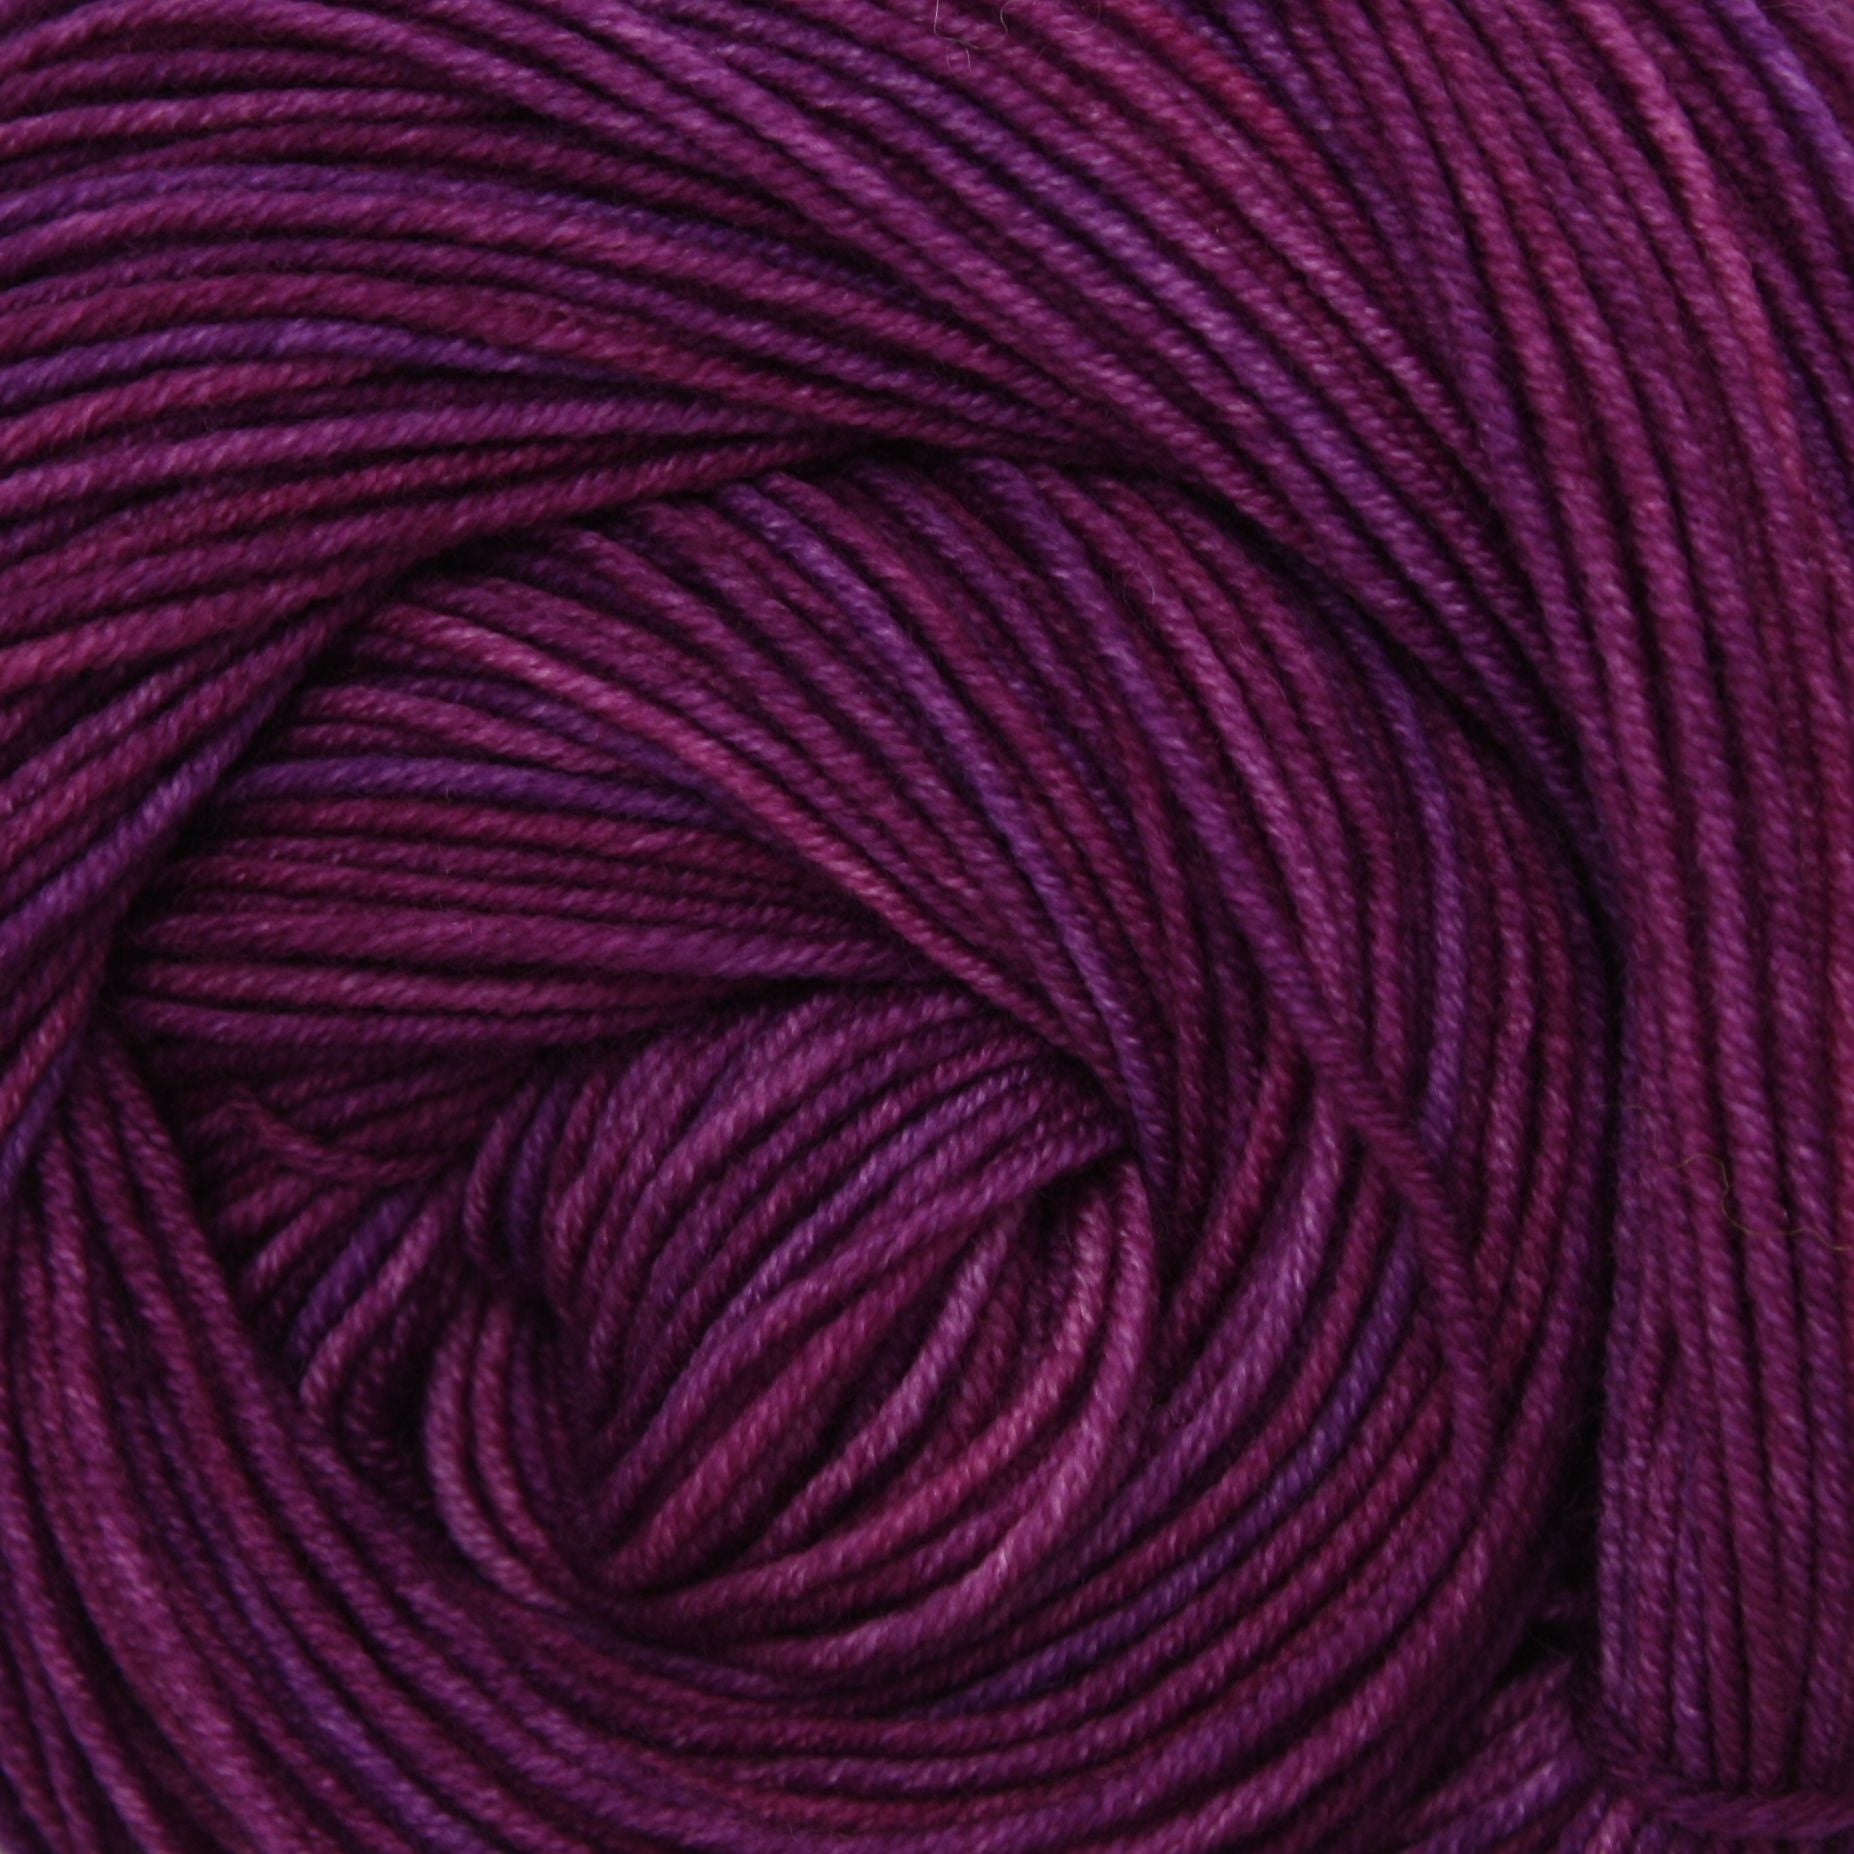 Aspen Sport Yarn | Colorway: Jelly Bean